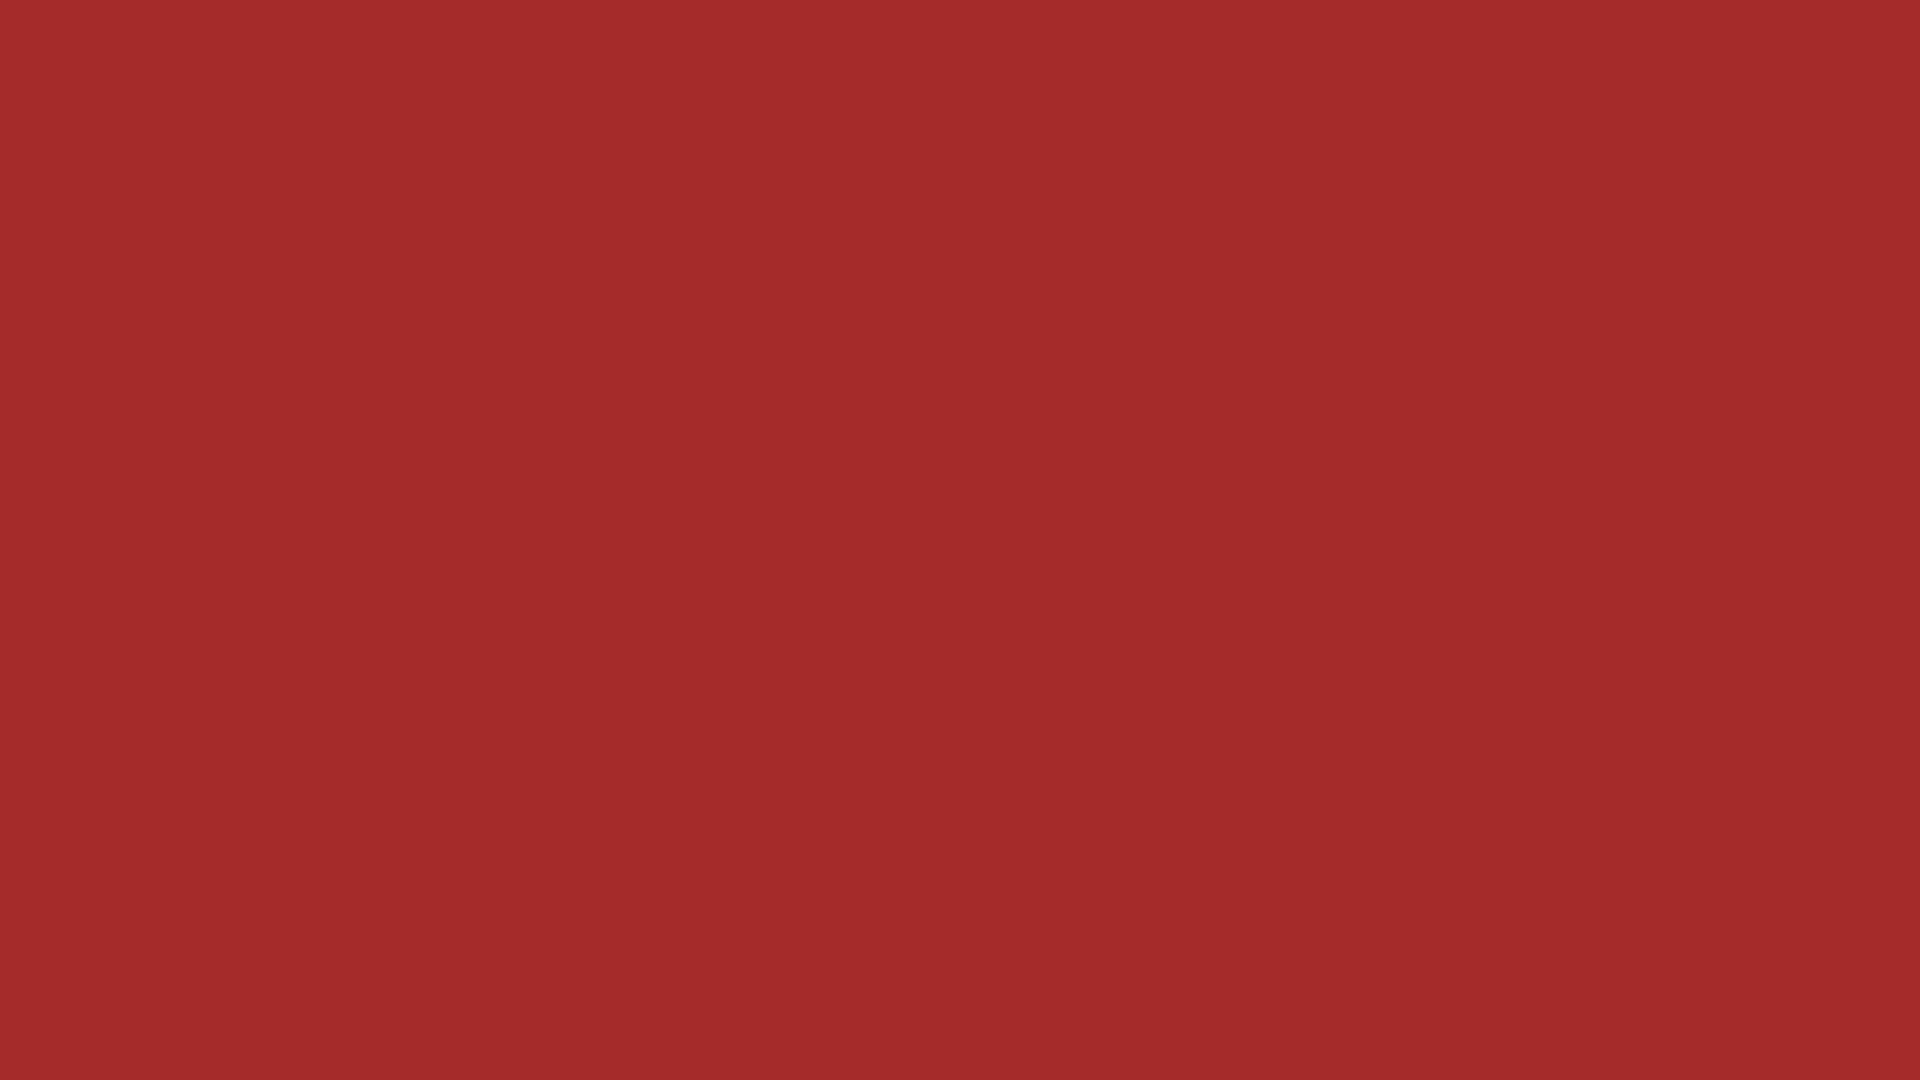 1920x1080 Red-brown Solid Color Background